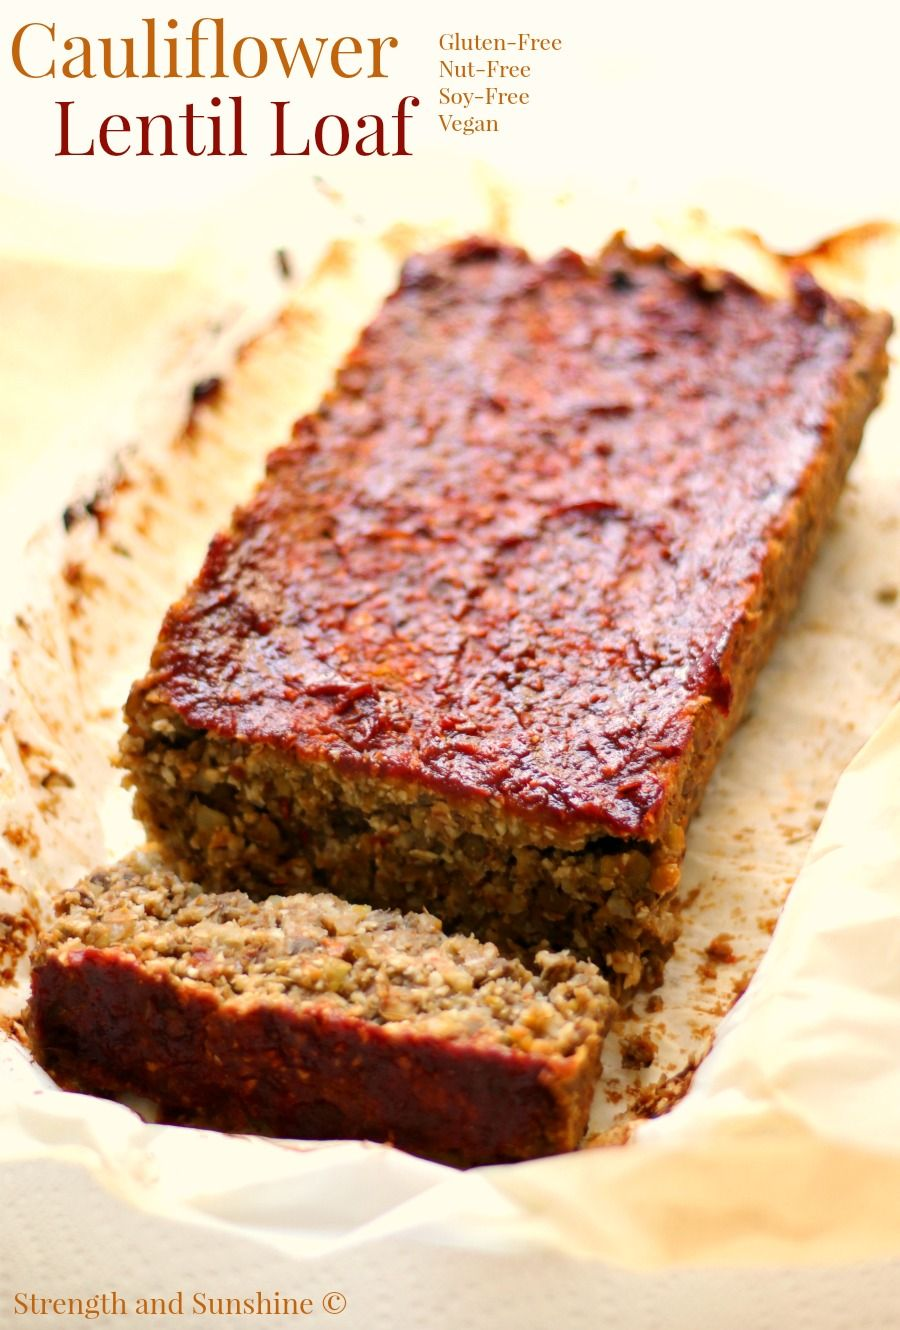 Vegan Cauliflower Lentil Loaf Recipe Lentil Loaf Vegan Lentil